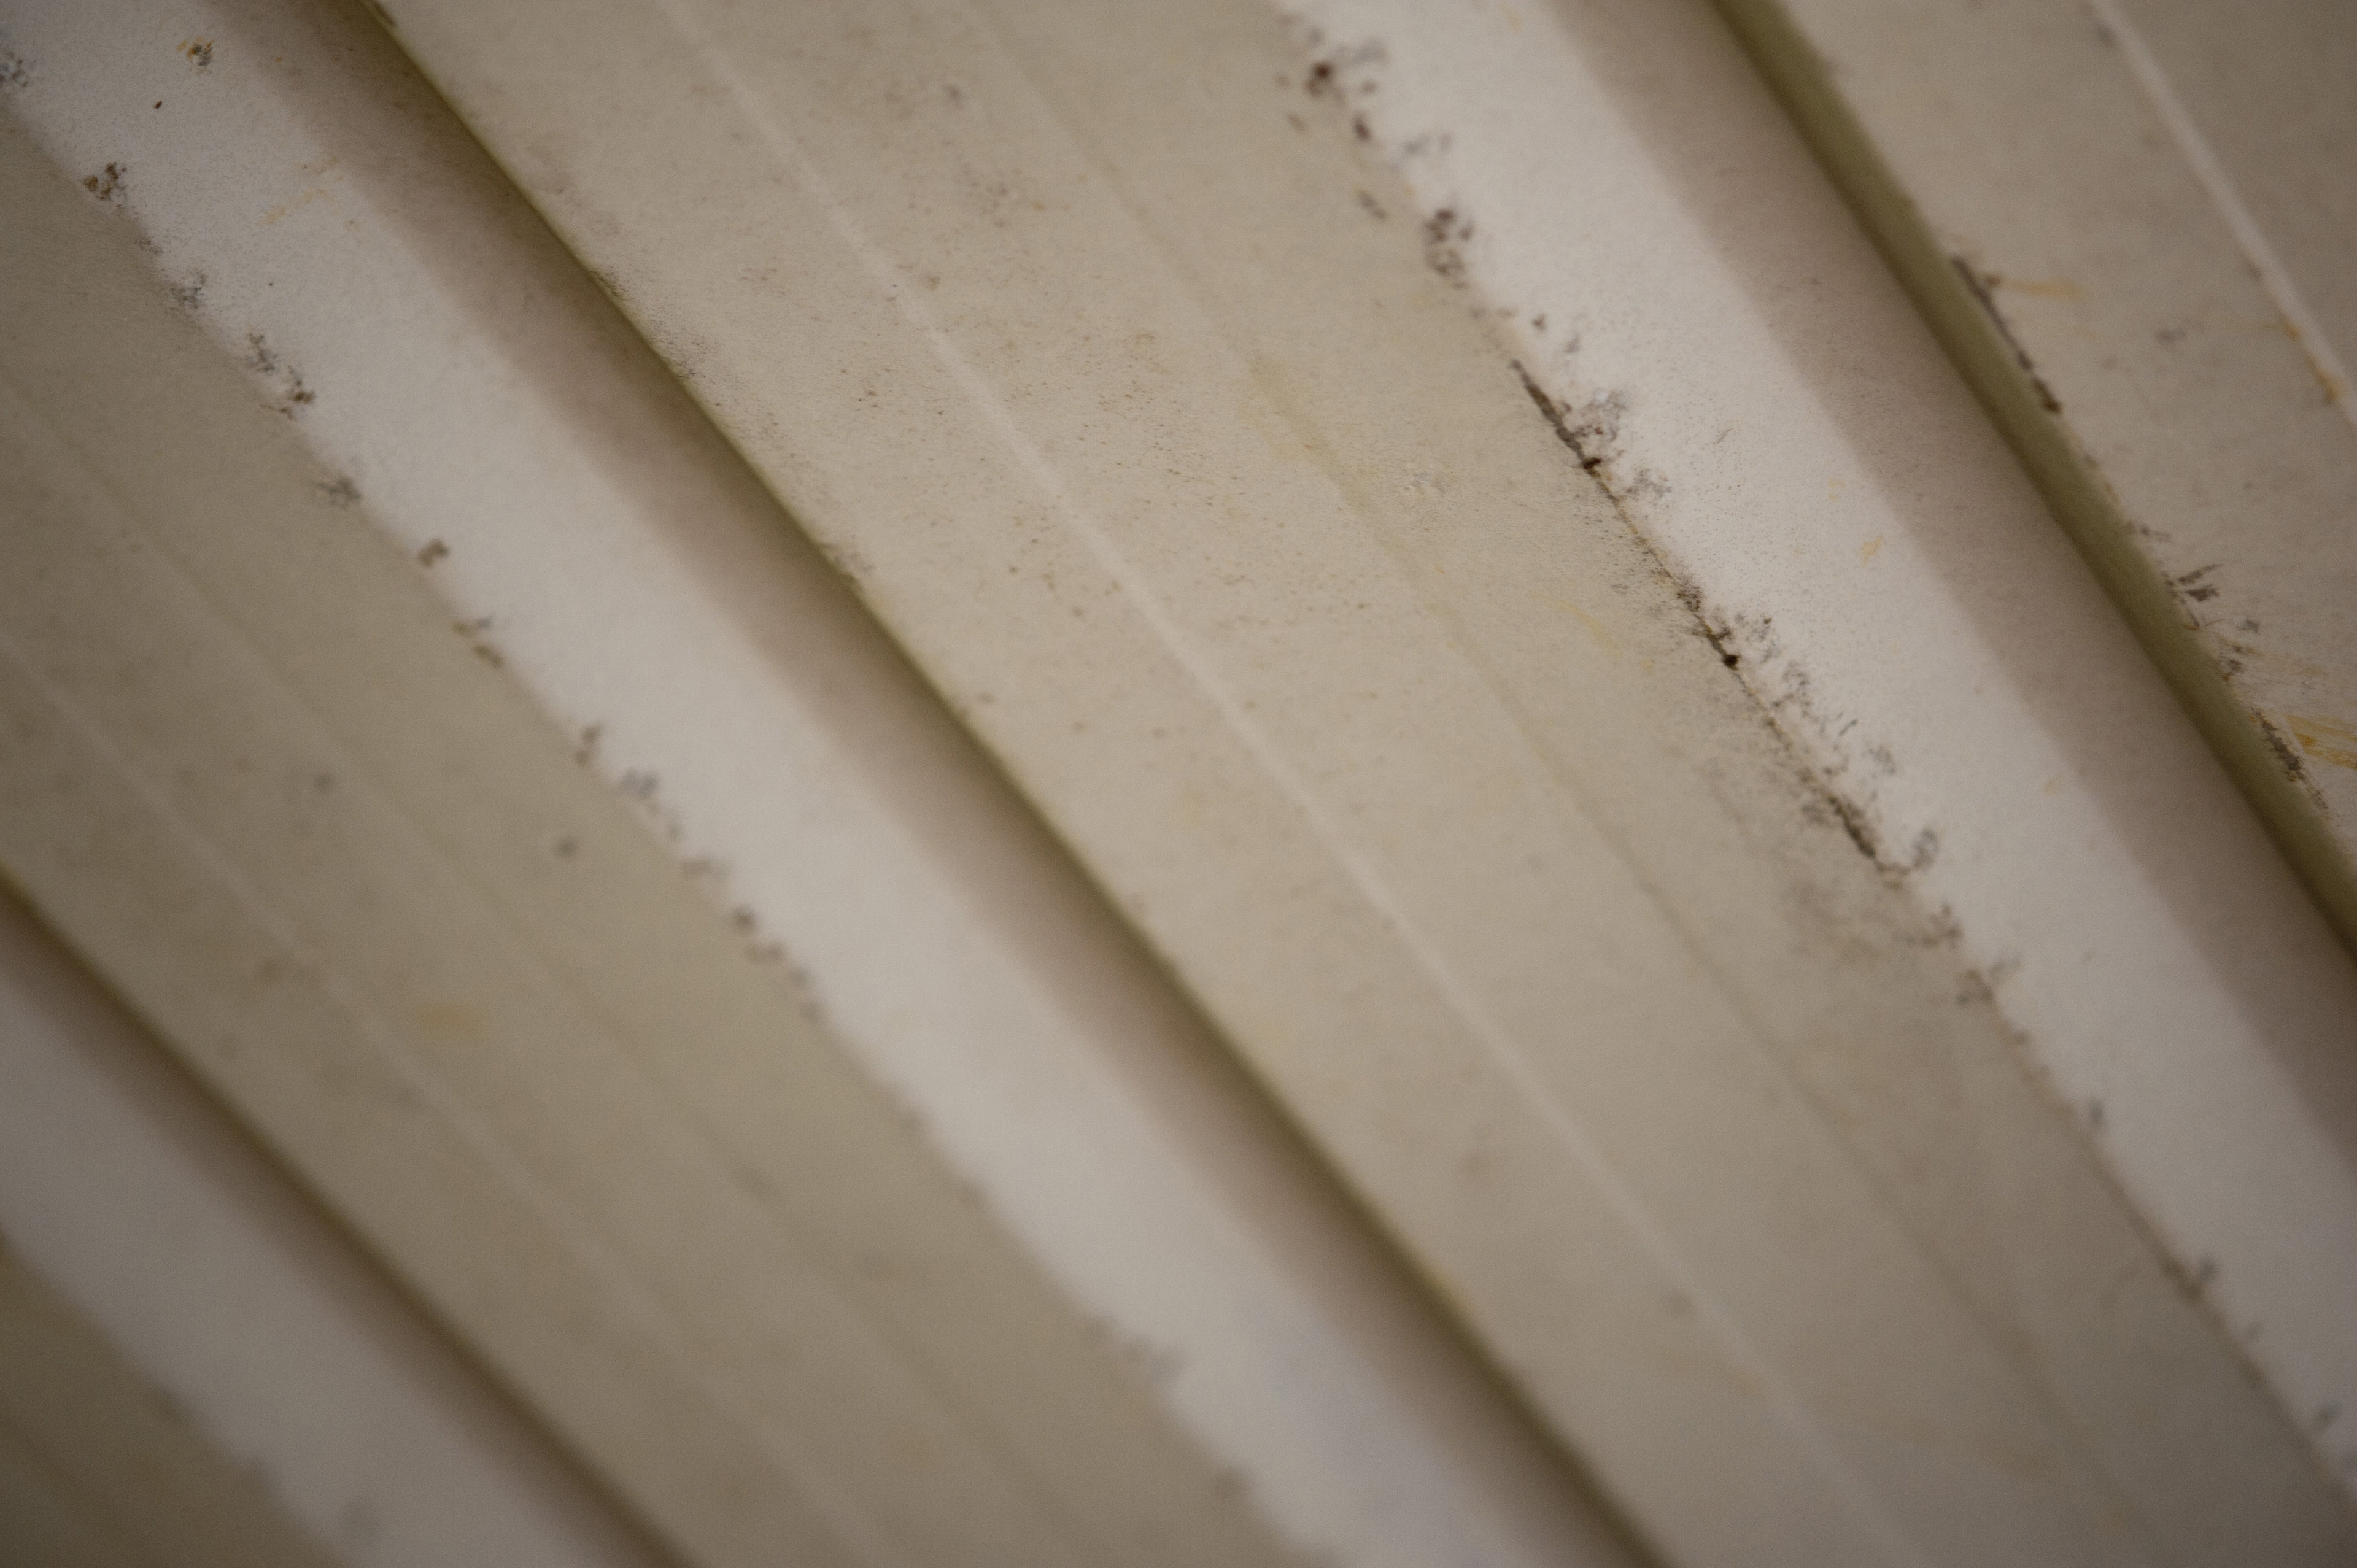 Corrugated metal sheet background with rough worn edges and chipped grunge white paint in an architectural background of building material